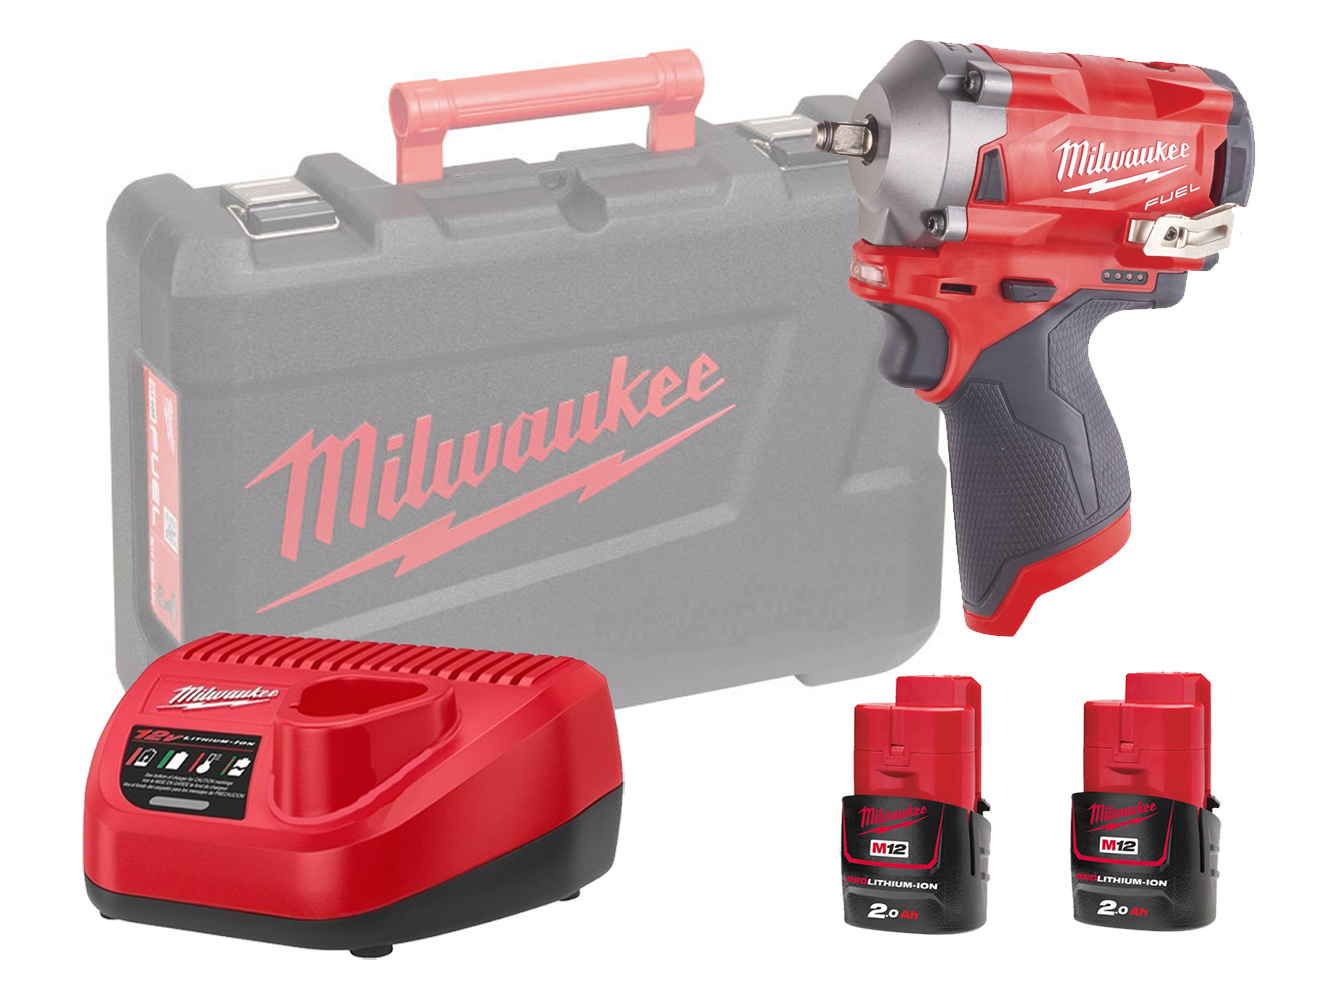 "MILWAUKEE 12V FUEL COMPACT IMPACT WRENCH 3/8"" - M12FIW38 - 2.0AH PACK"